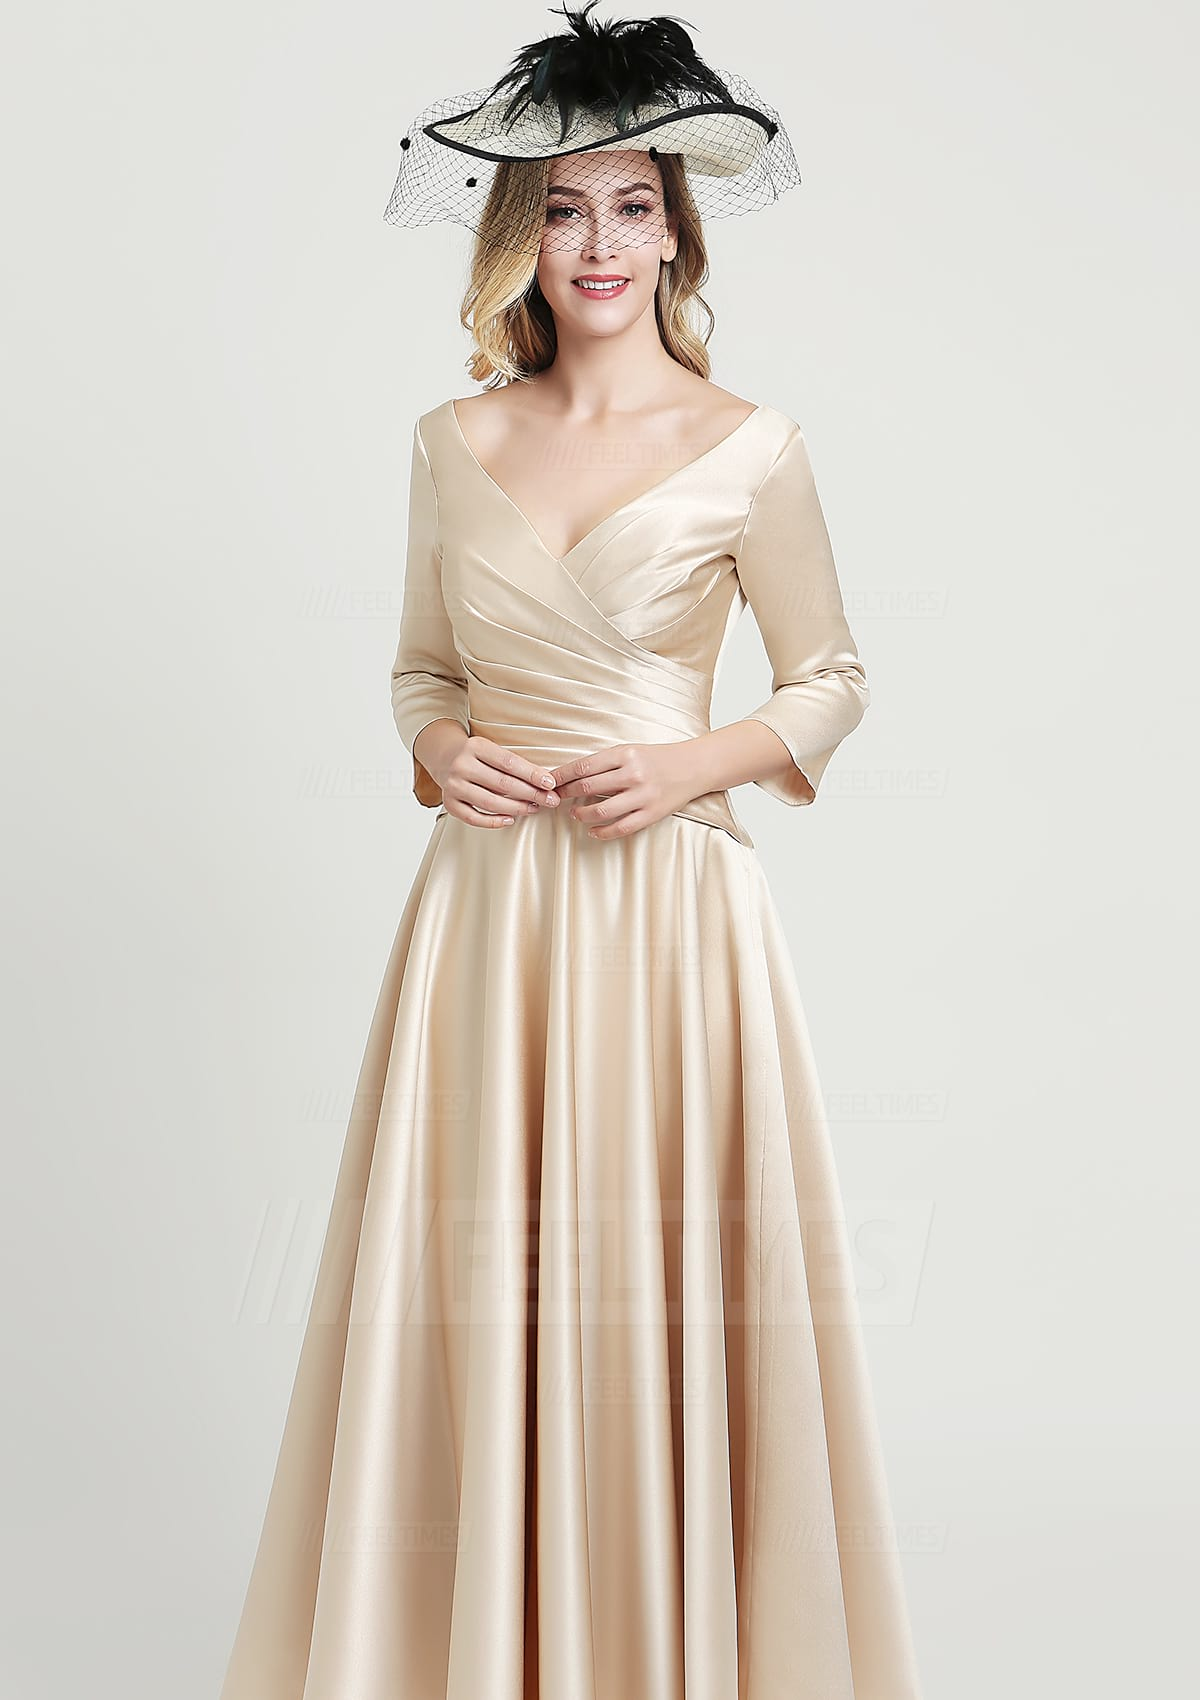 A-line/Princess V Neck 3/4 Sleeve Ankle-Length Satin Mother of the Bride Dress With Pleated